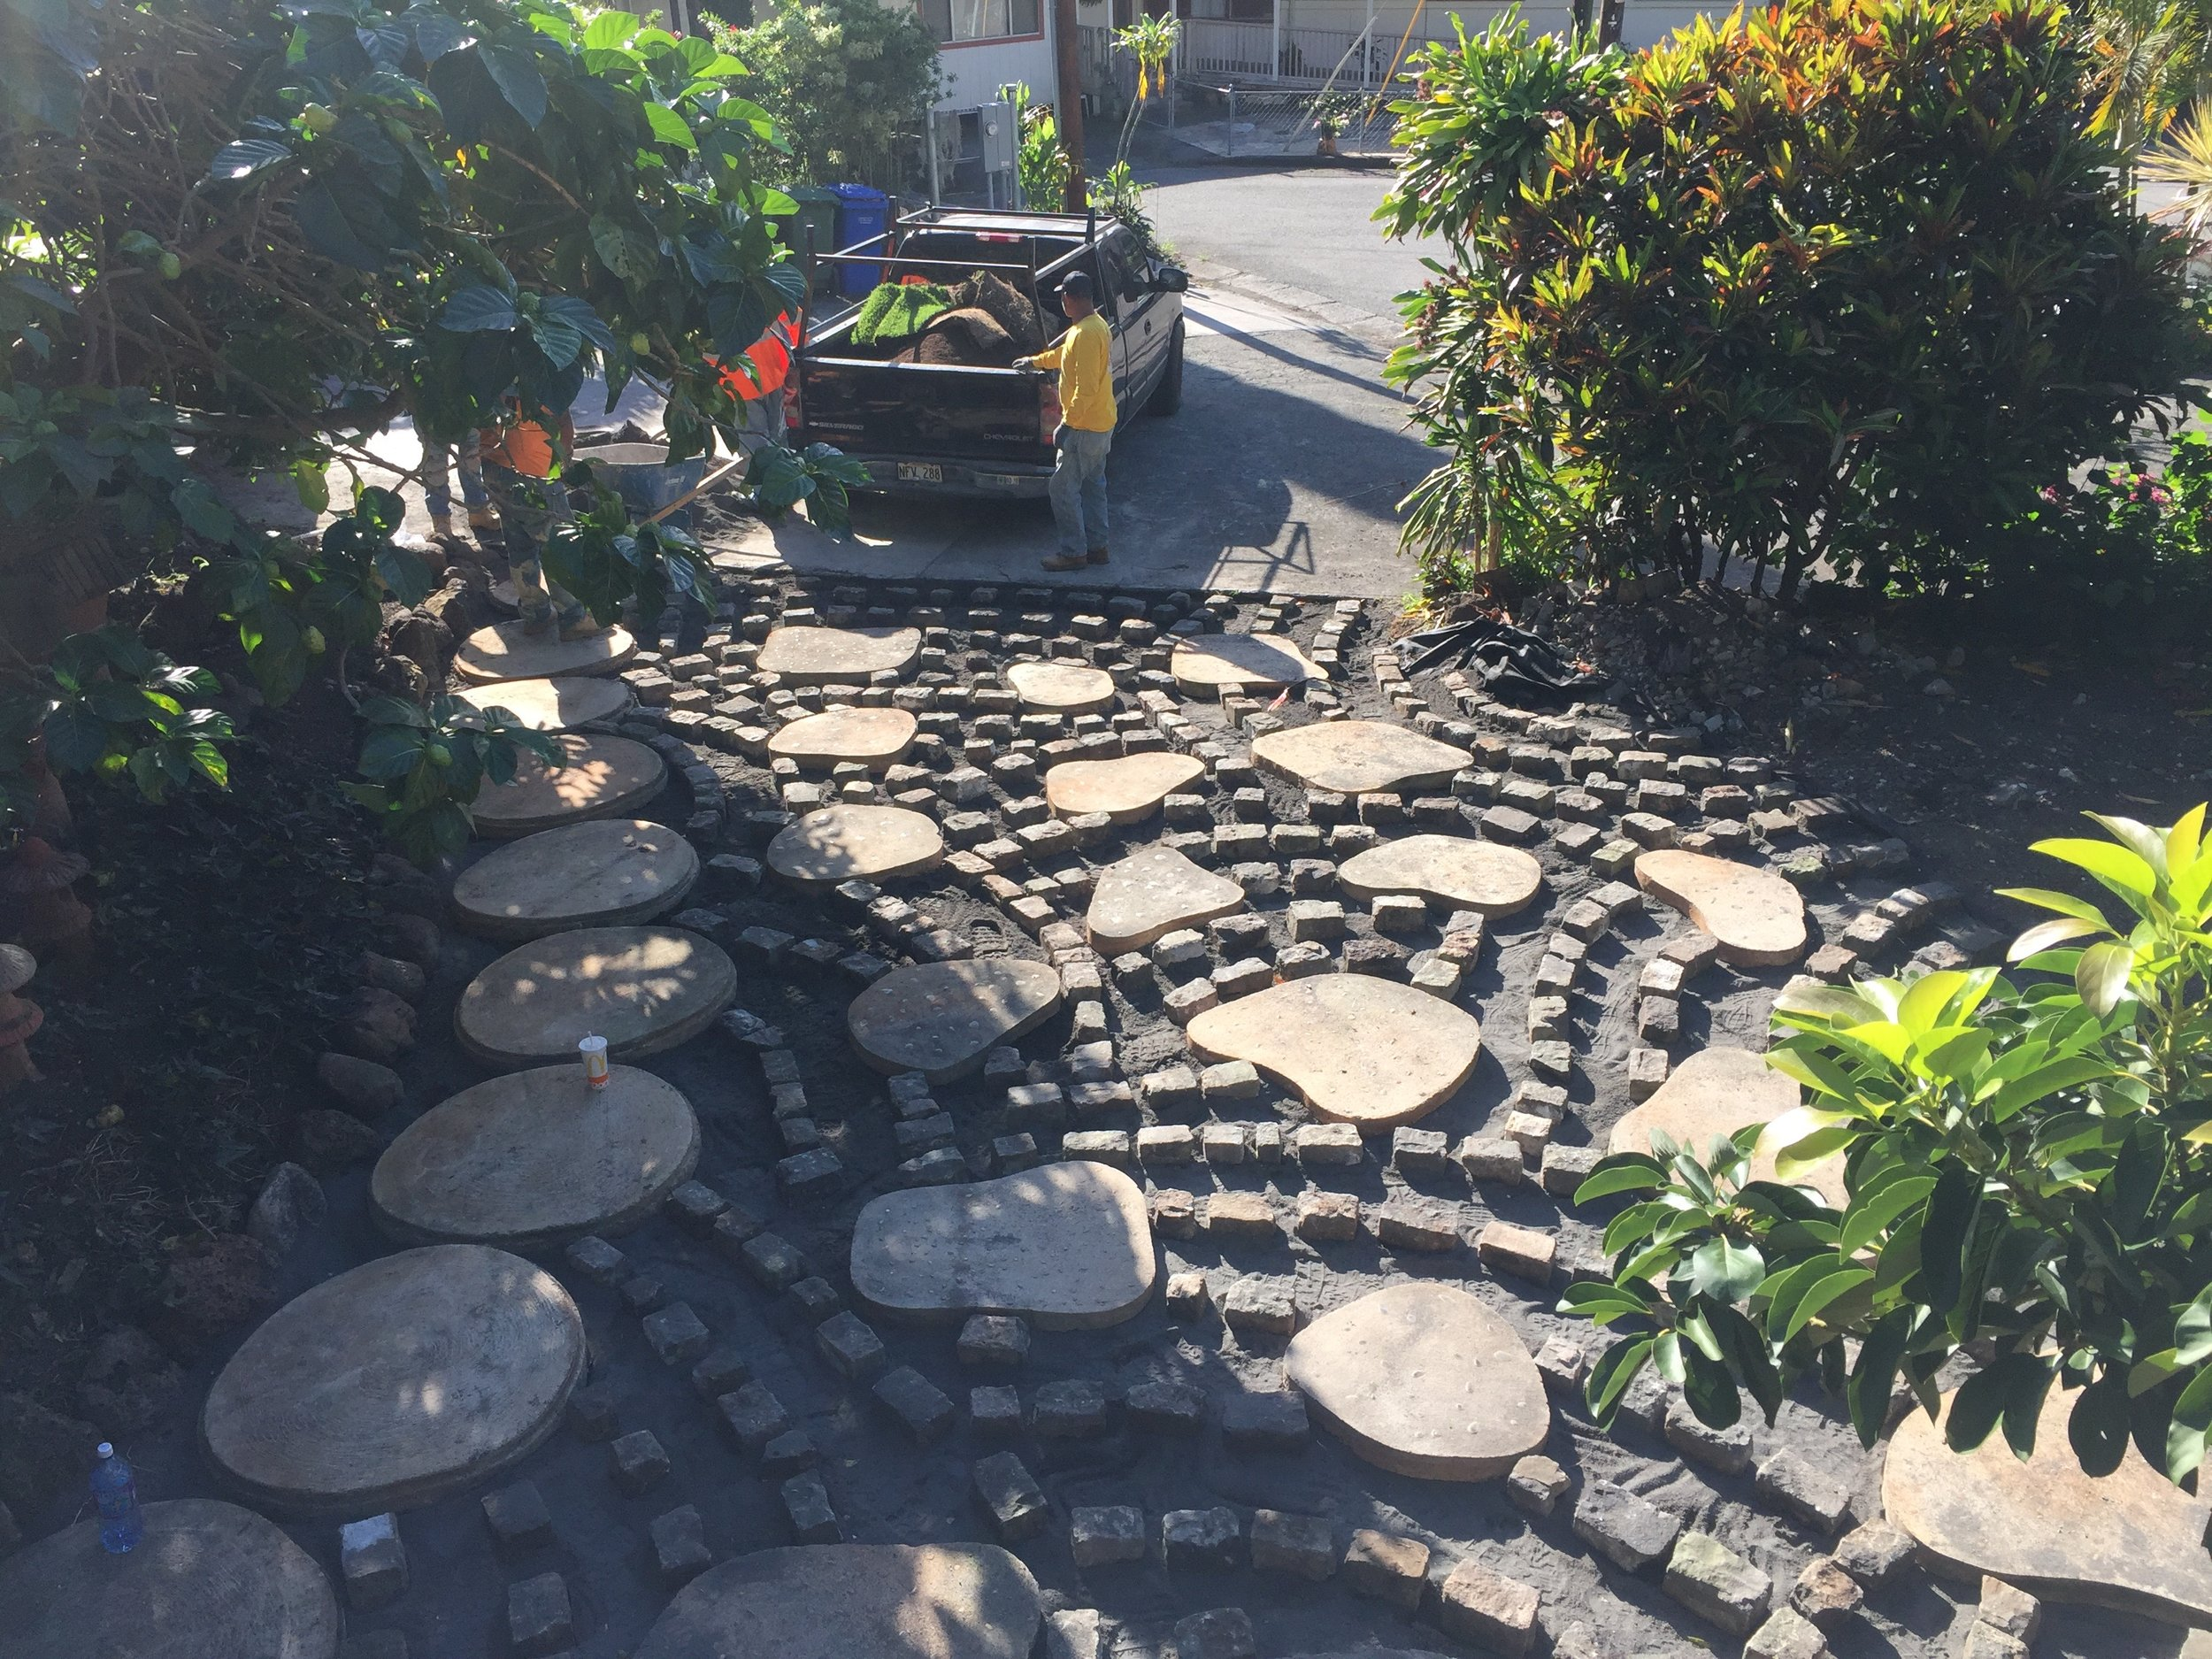 Above: Reclaimed cobblestones salvaged from old Iwalei Rd. are arranged in a fish scale pattern.